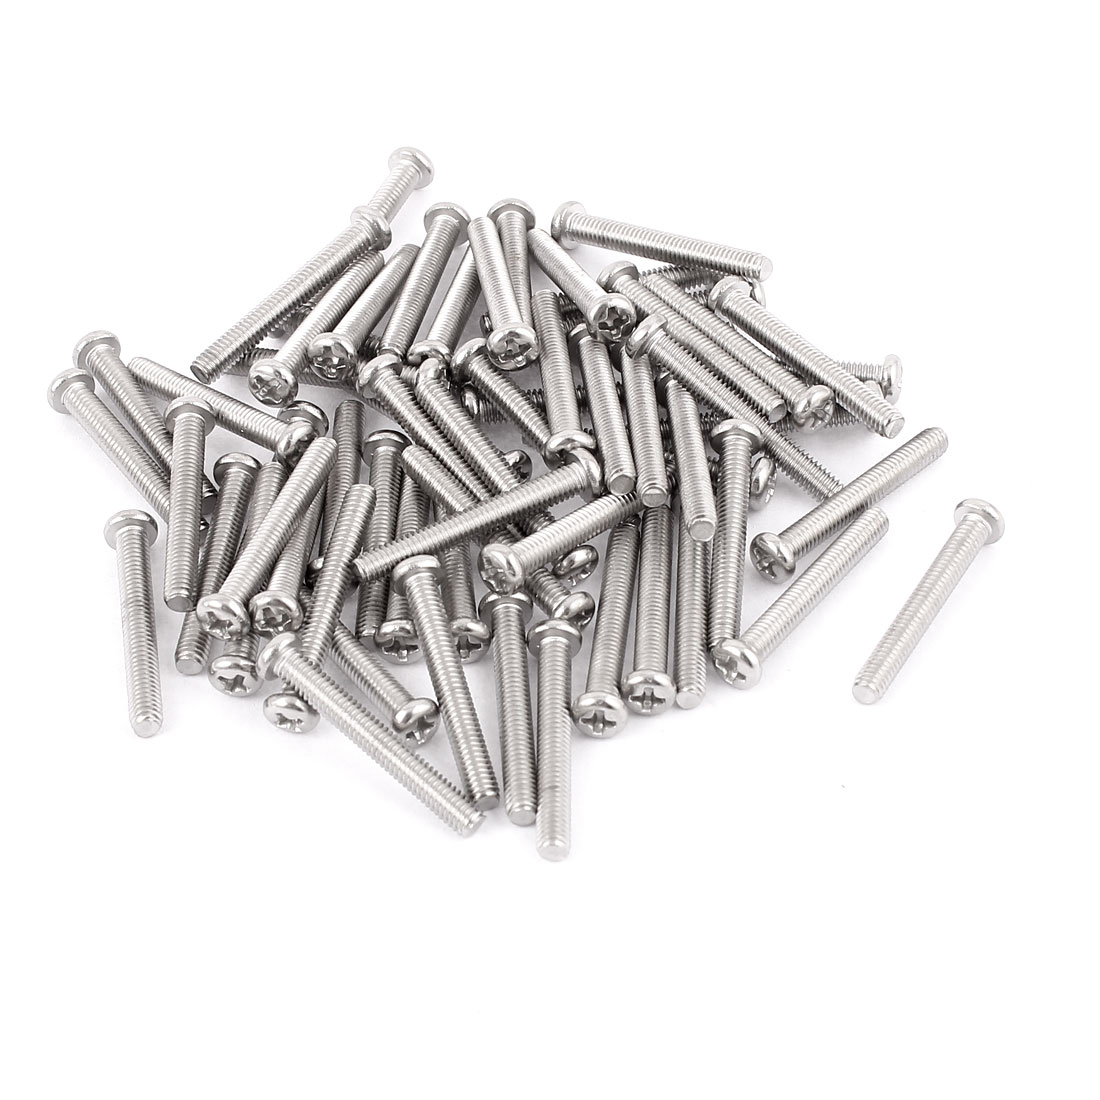 M4 x 30mm 304 Stainless Steel Crosshead Phillips Round Head Screws Bolts 60pcs